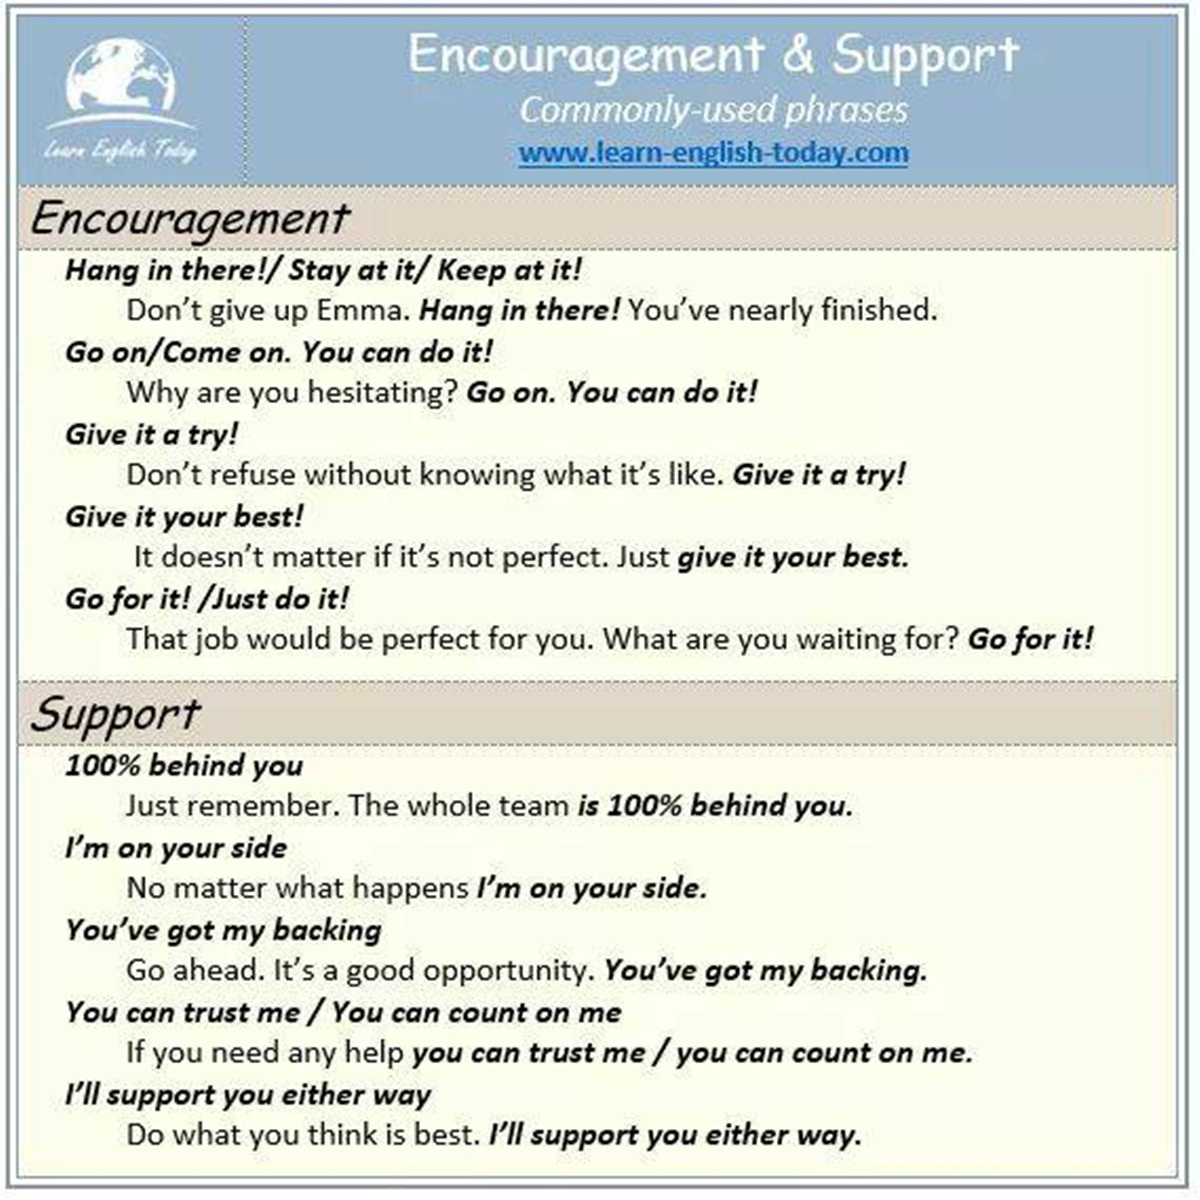 Commonly-Used Phrases: Encouragement & Support 3